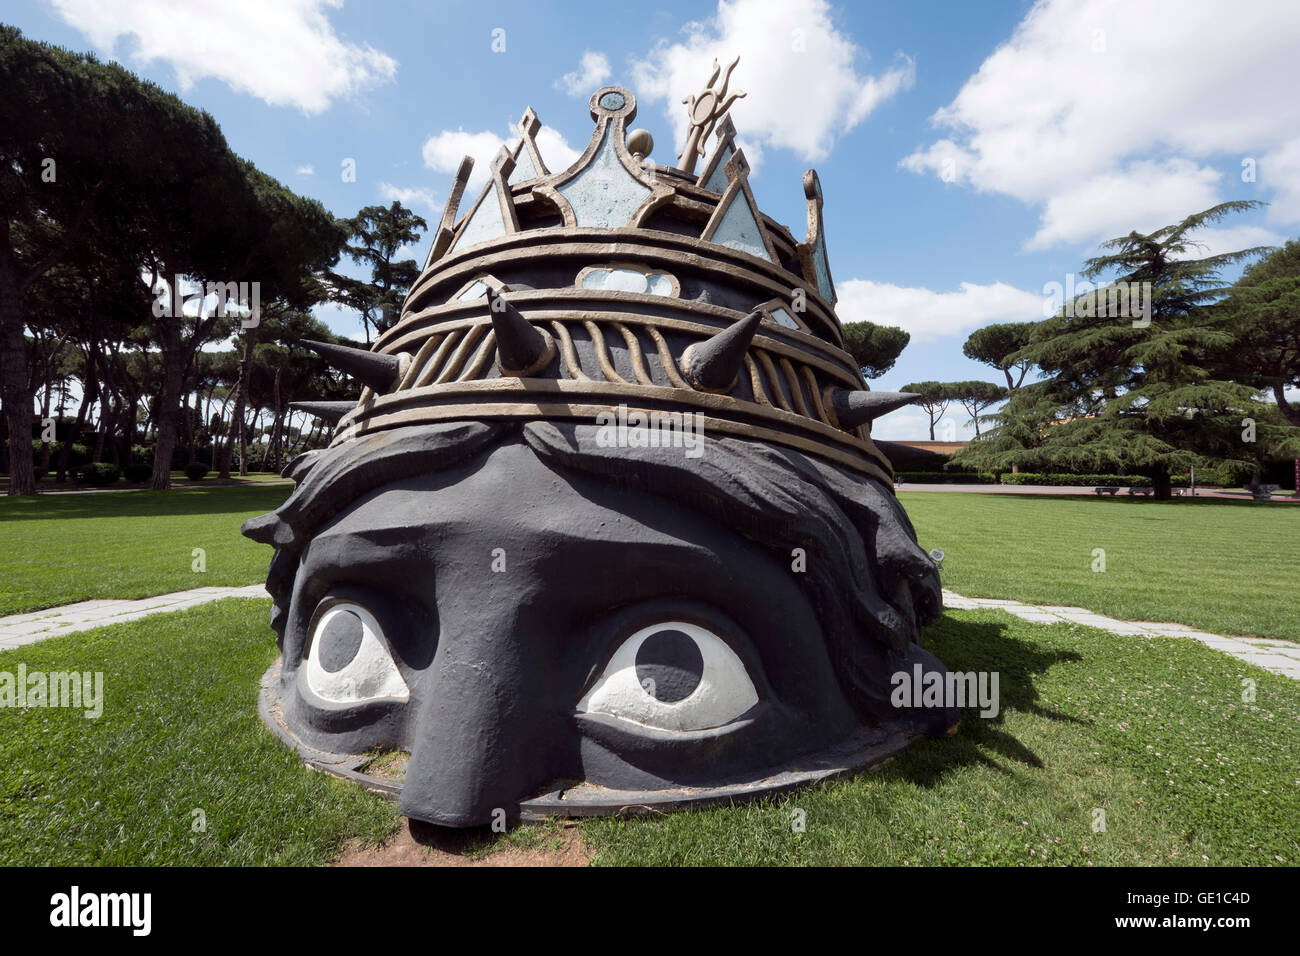 A prop from Federico Fellini's film Casanova as seen on the grounds of the film studio Cinecitta in Rome, Italy - Stock Image